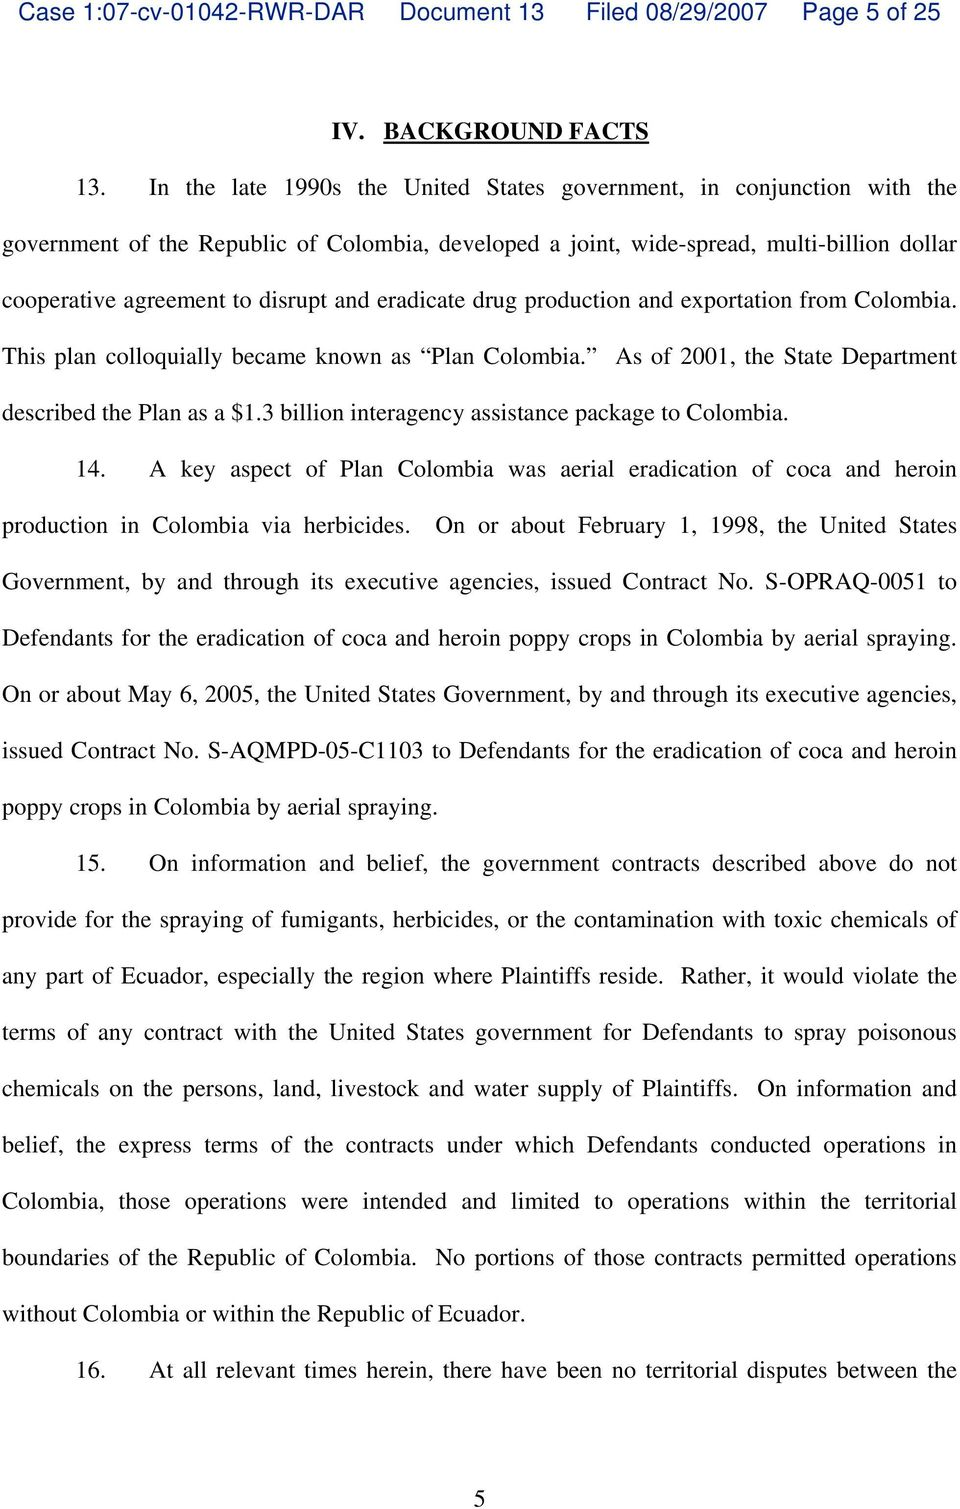 and eradicate drug production and exportation from Colombia. This plan colloquially became known as Plan Colombia. As of 2001, the State Department described the Plan as a $1.